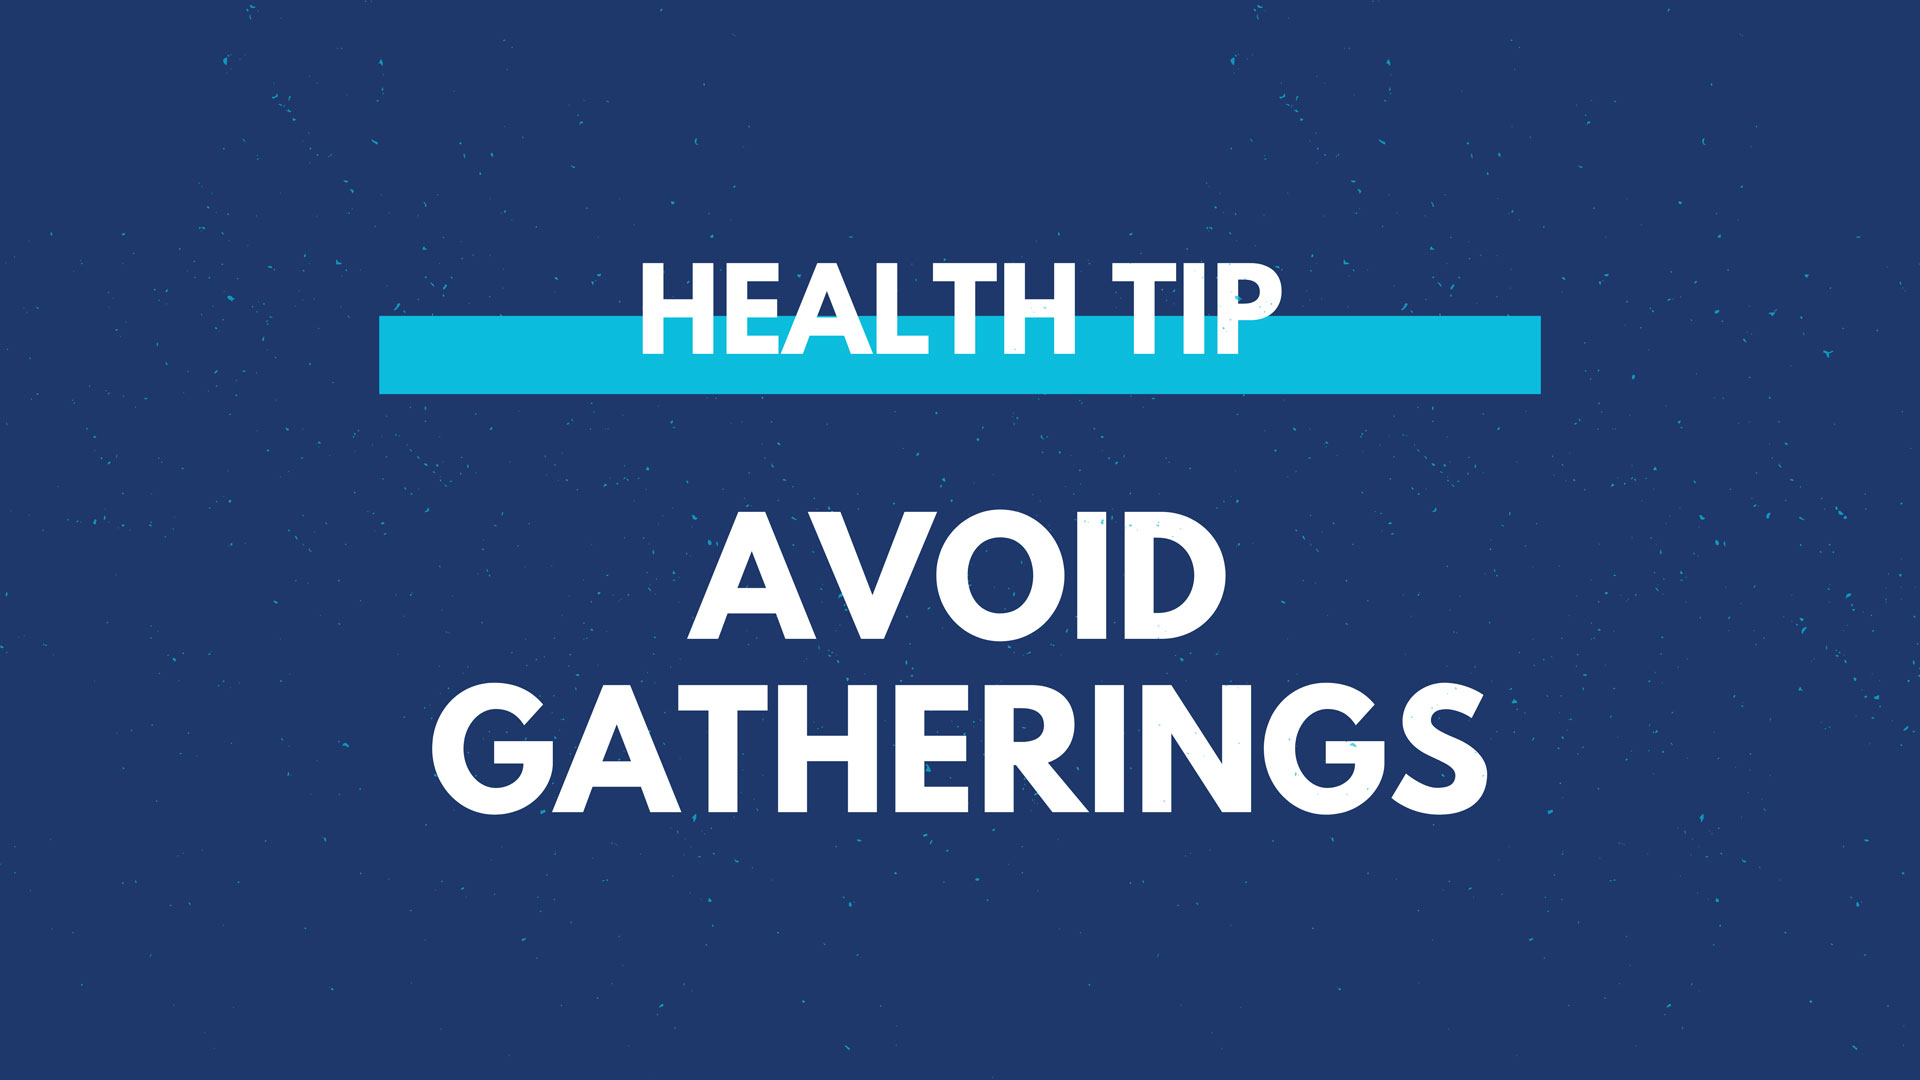 Health Tip - Avoid Gatherings